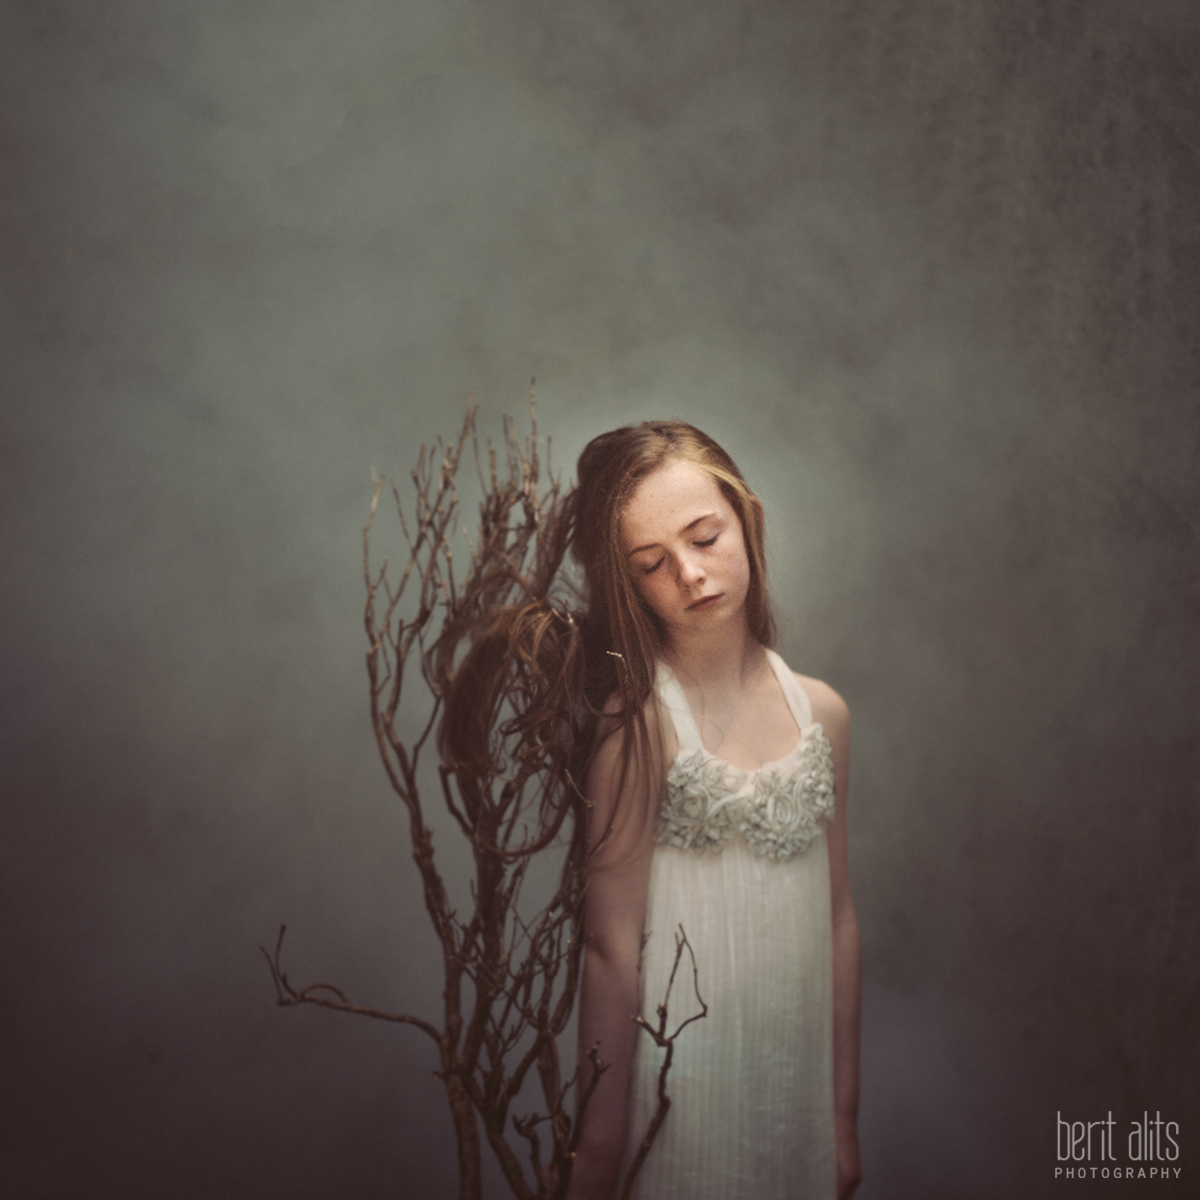 05_Standing_With_The_Wind_creative_portrait_artistic_young_girl_clonmel_tipperary_ireland_photography_photographer_family_different_windy_long_hair_dreamy_nikon_d800_50mm_f1.4_square_format_natural_light_pose_posing_smoke